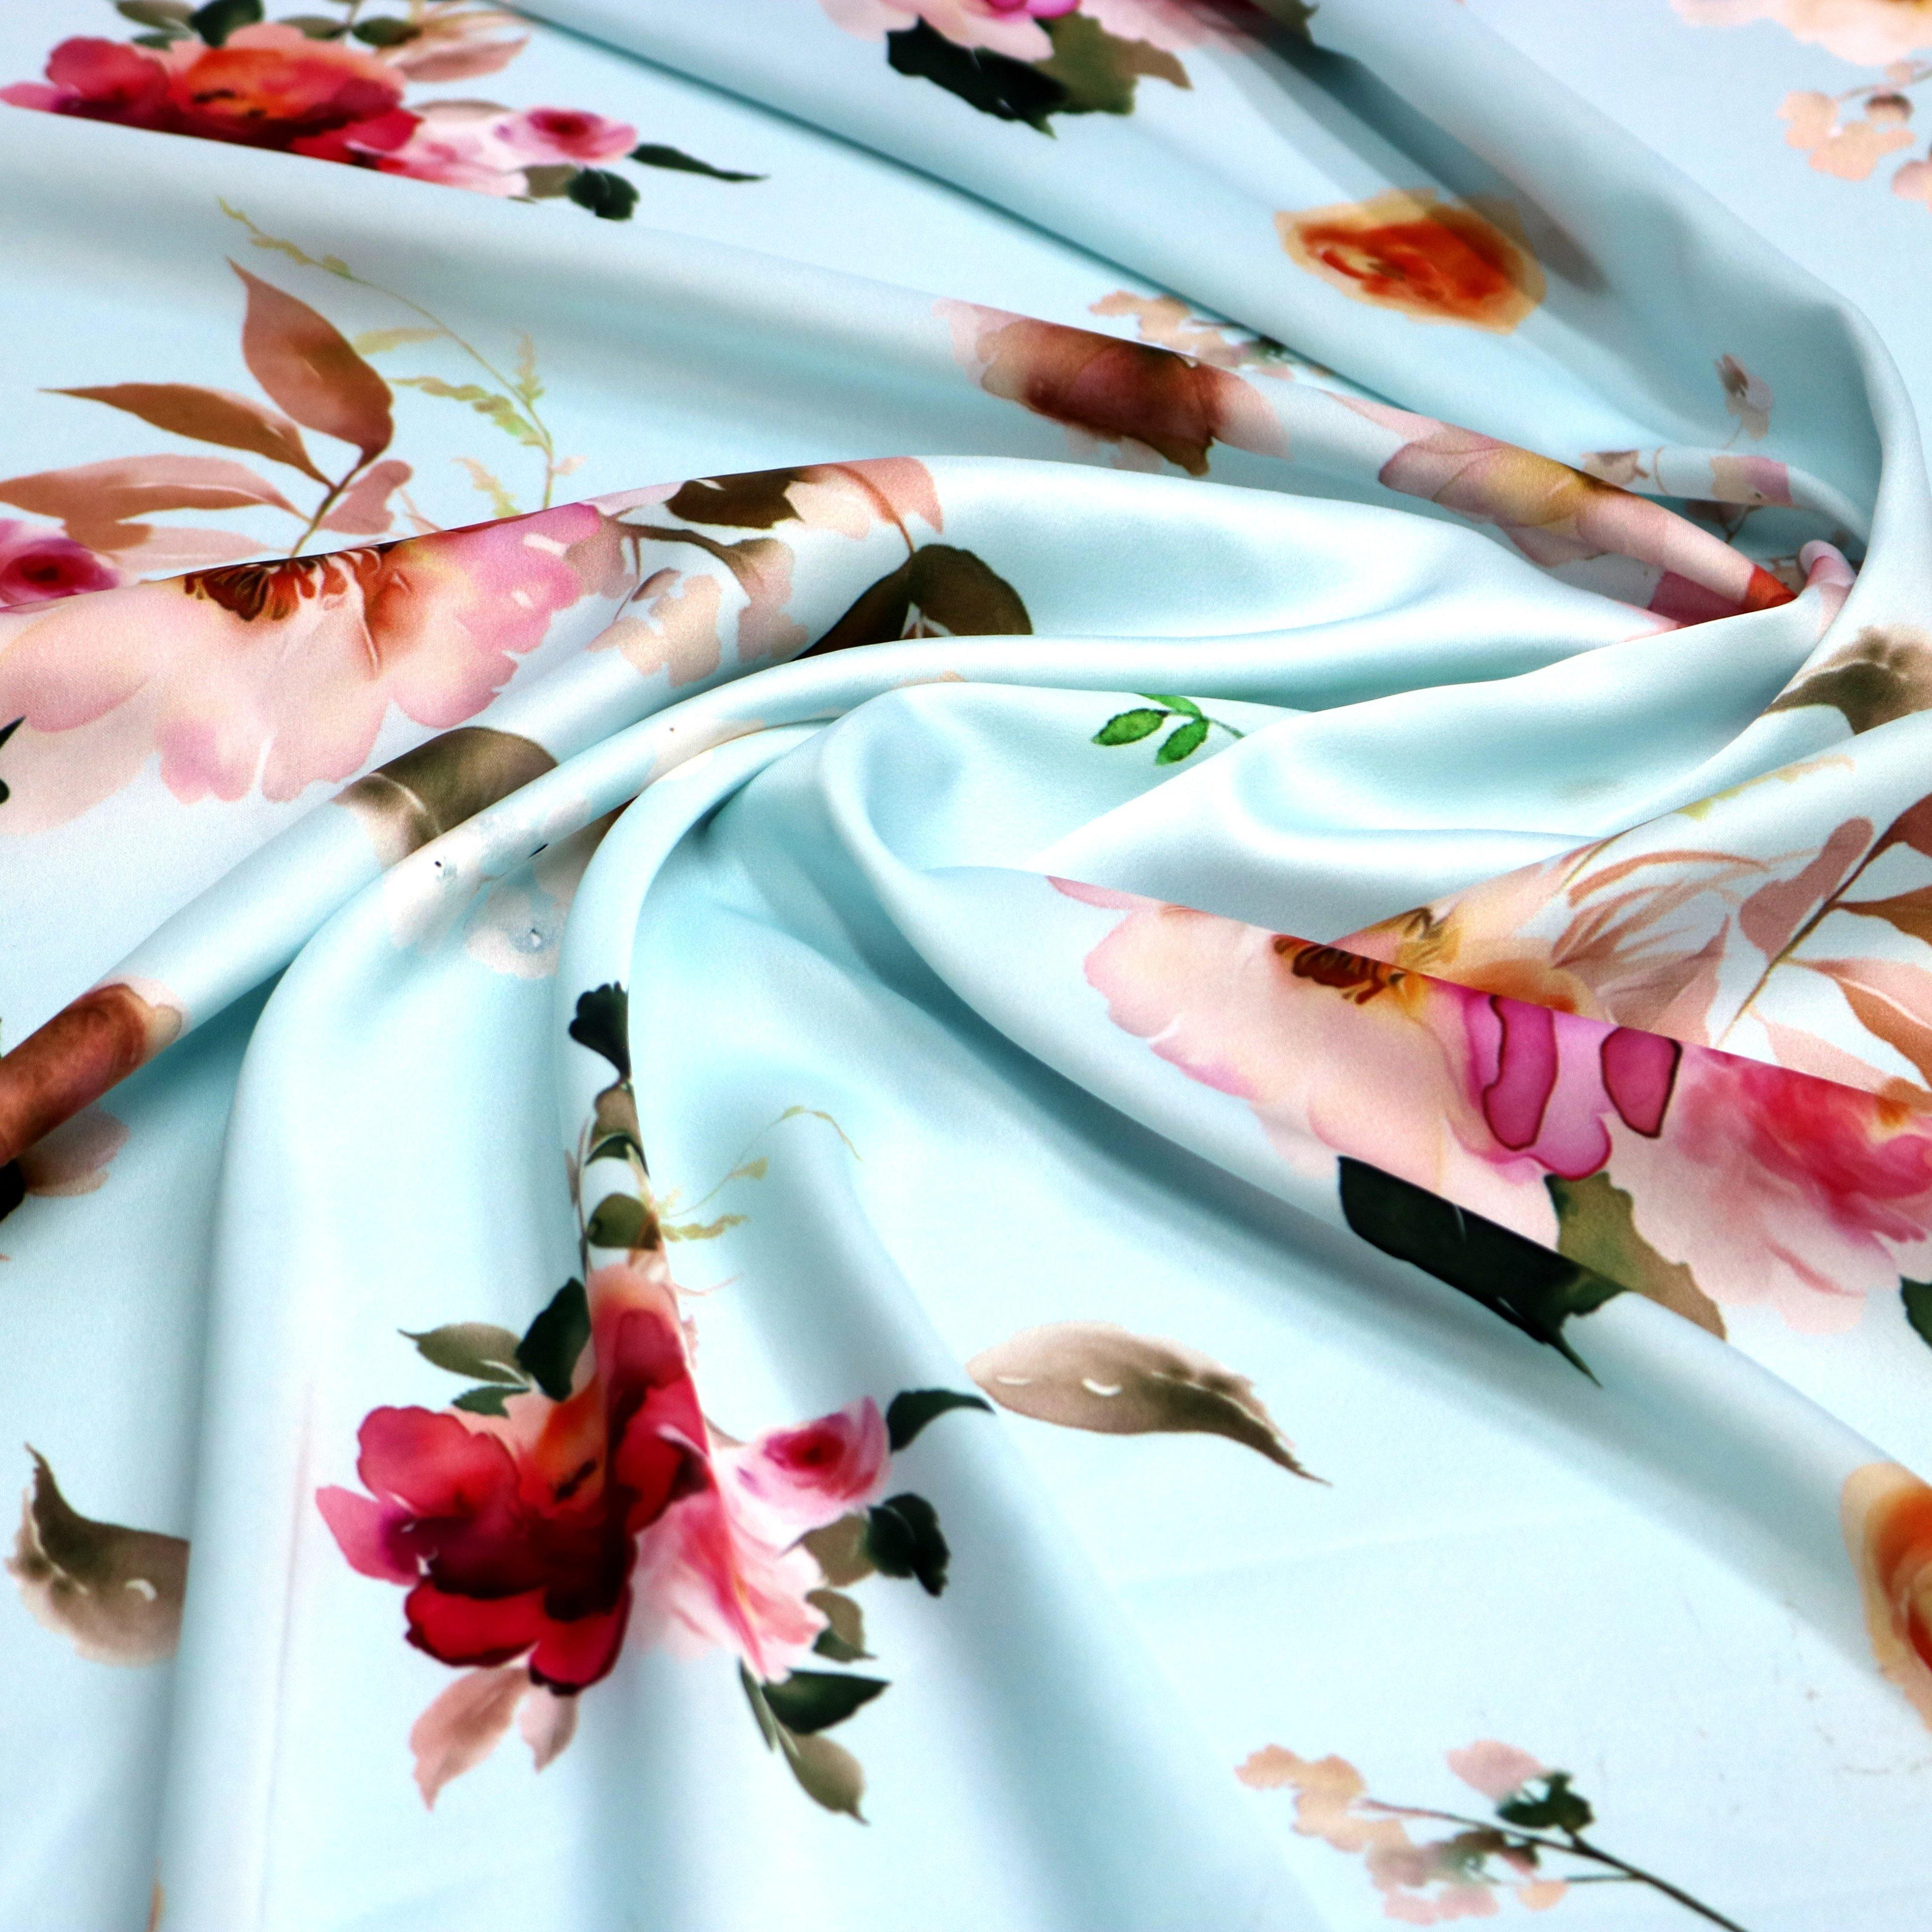 High Quality Multicolor Floral on Rama Digitally Printed Fabrics - FAB VOGUE Studio